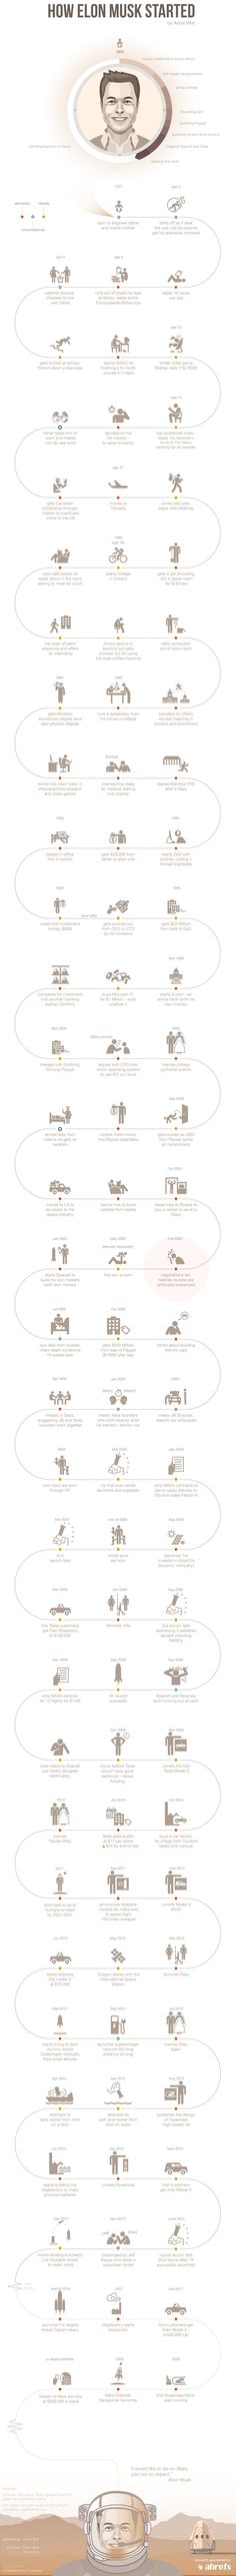 This Infographic of Elon Musk's Life is Your Roadmap to Brilliance